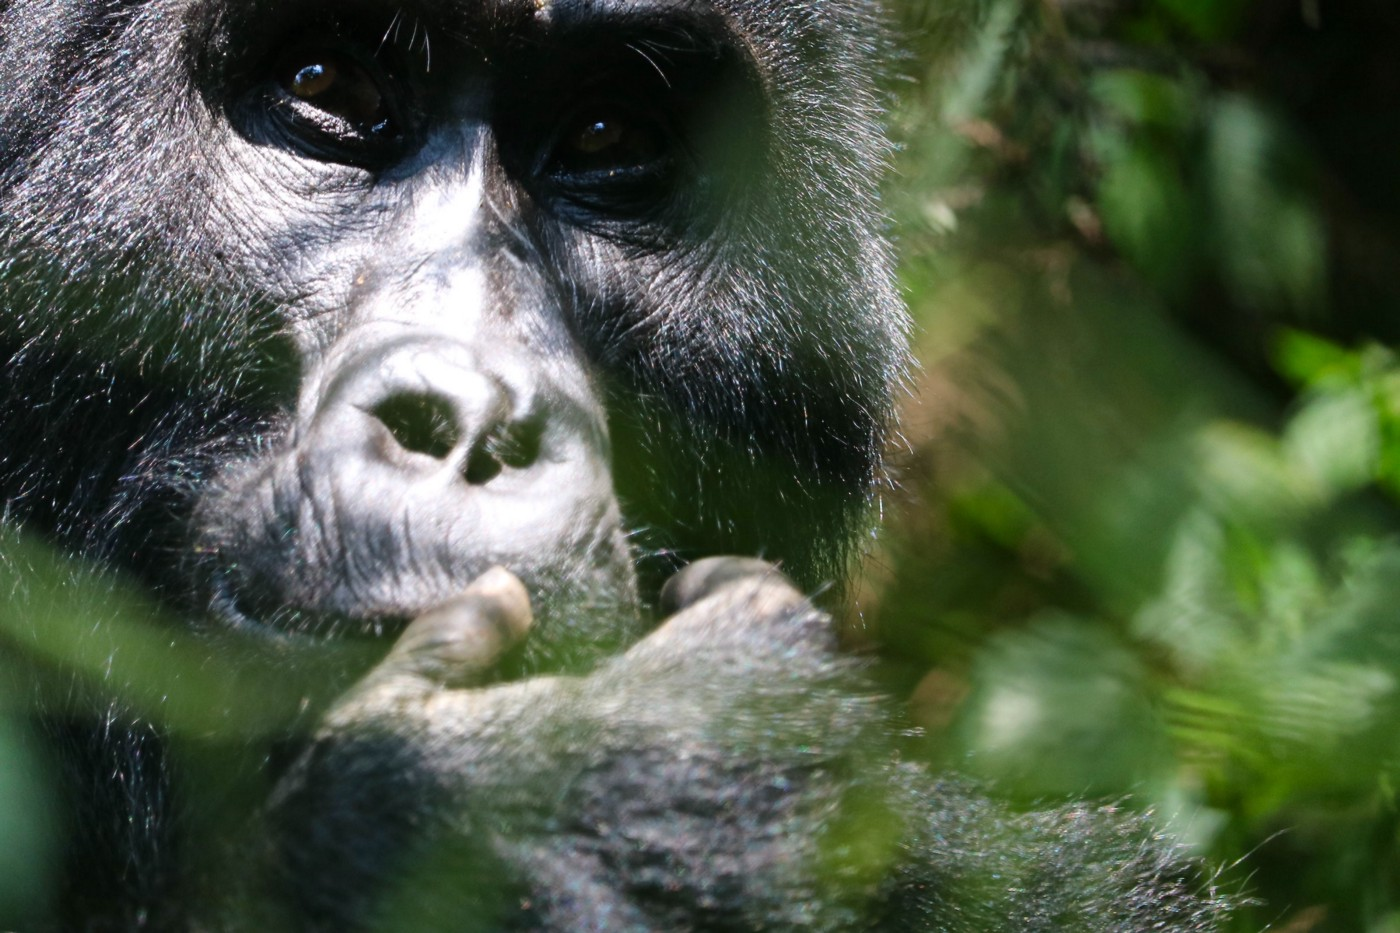 A gorilla standing among leaves, touching its thumb to its lips.